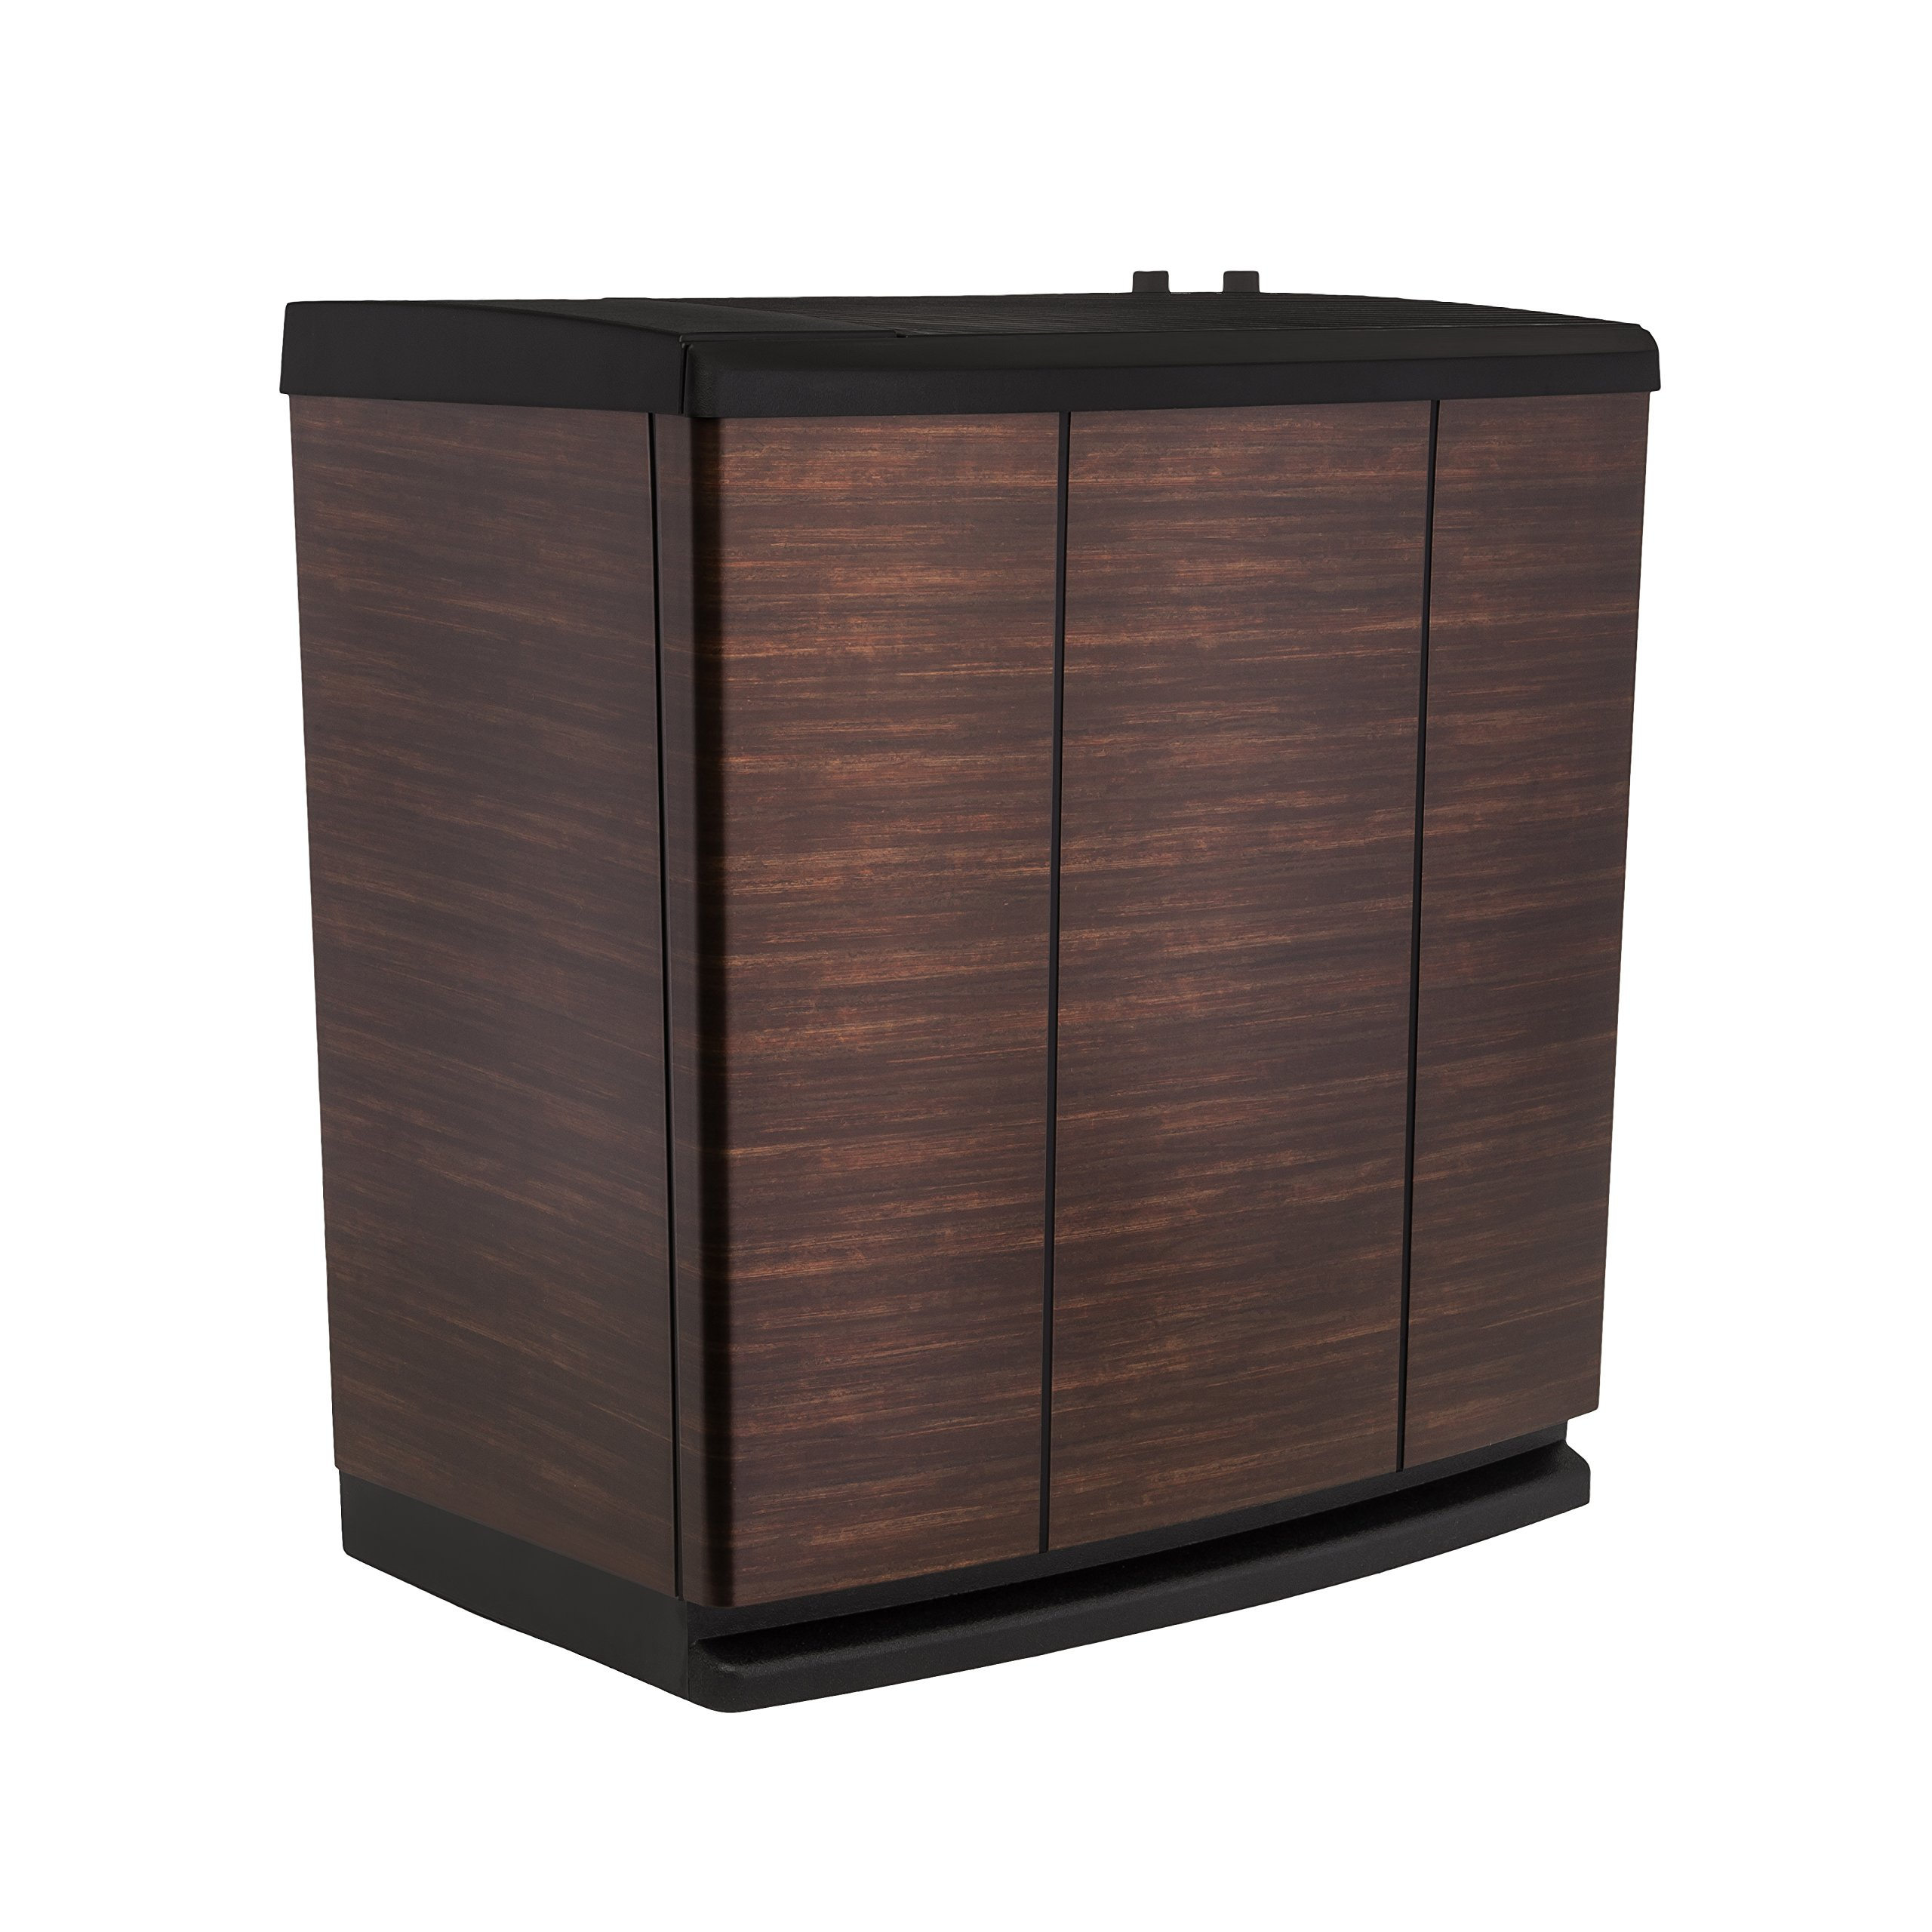 AIRCARE H12600 Digital Whole-House Console-Style Evaporative Humidifier, Copper Night by Bemis (Image #2)